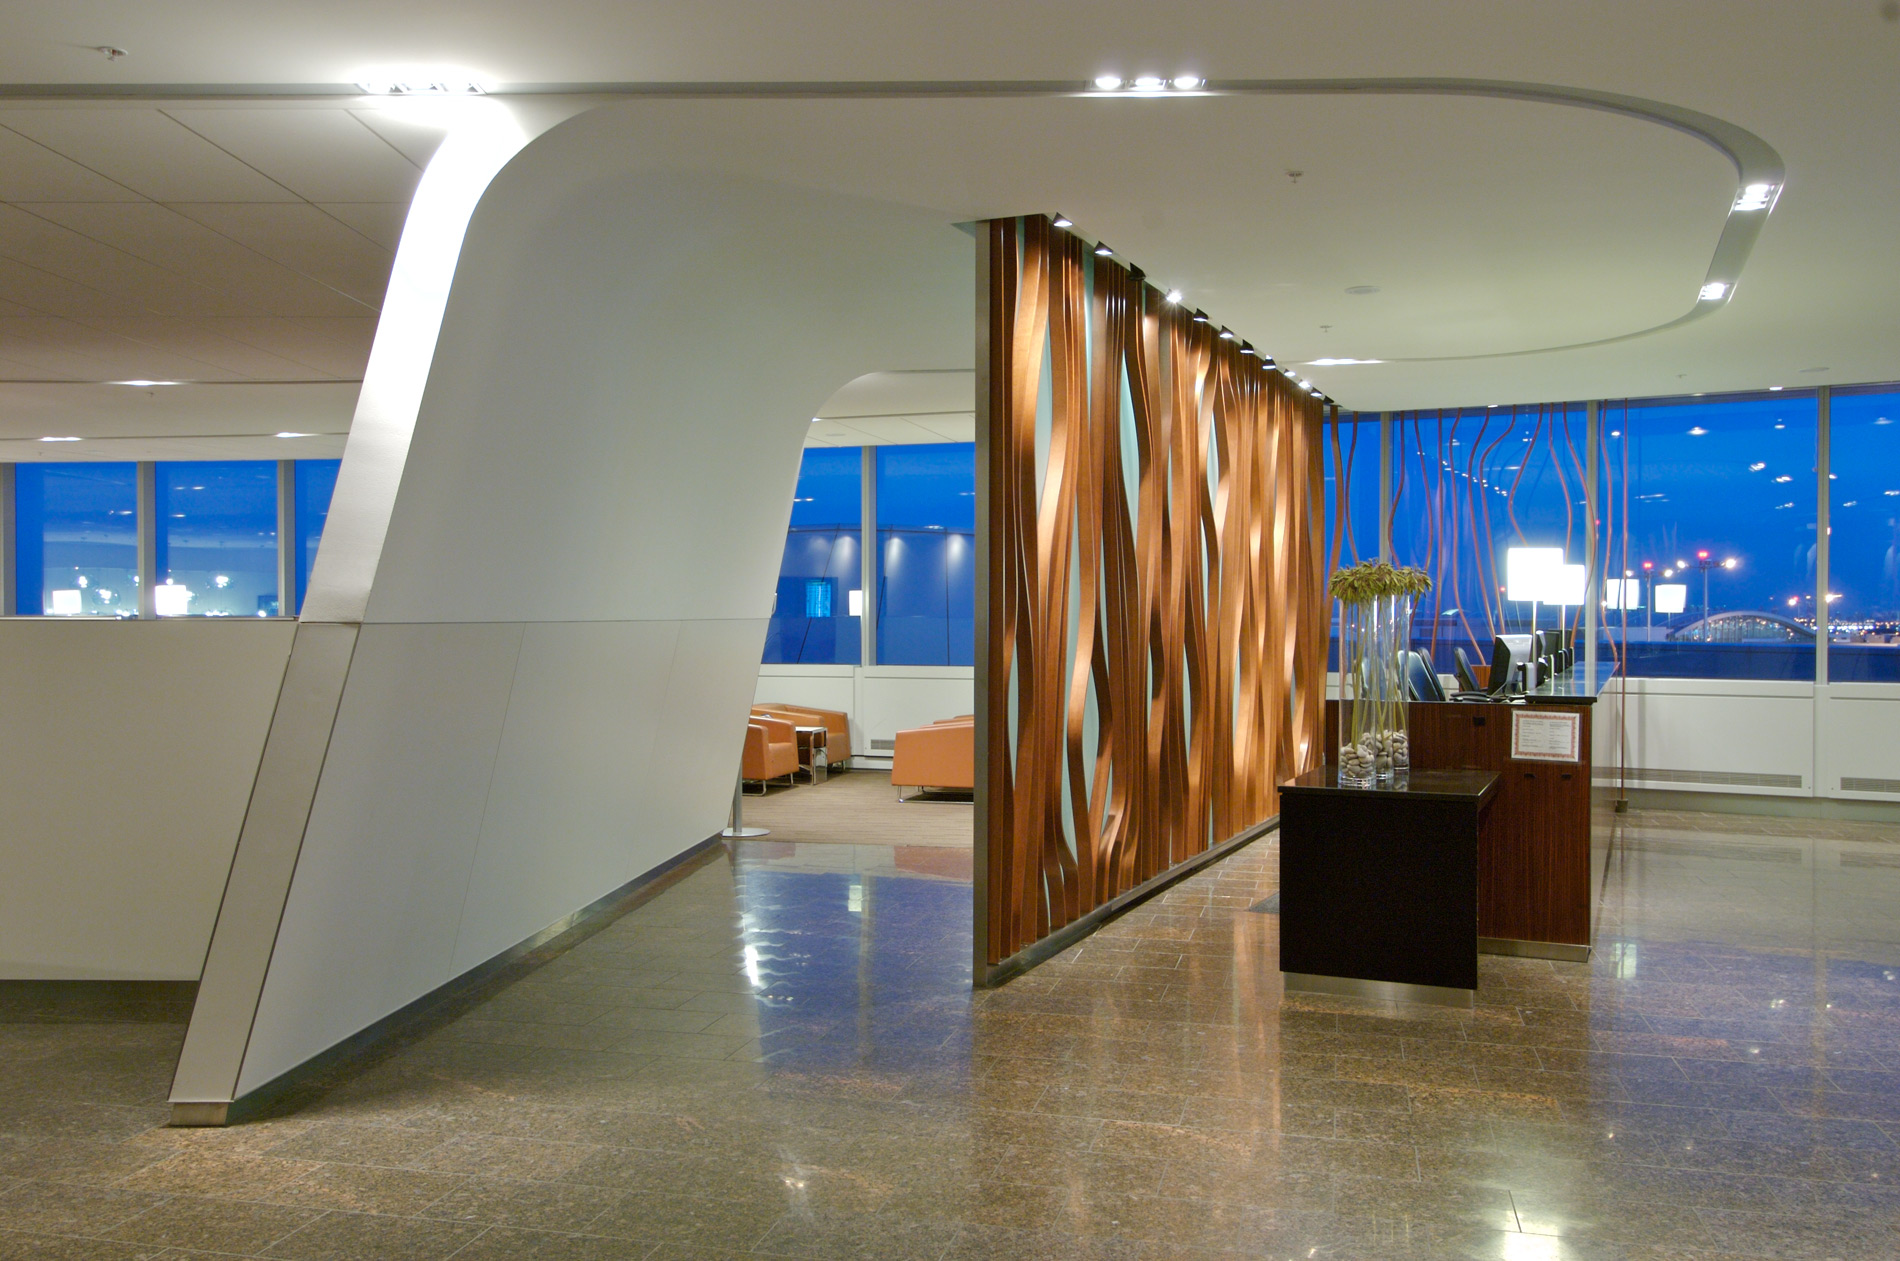 YYZ-Transboarder-Maple-Leaf-Lounge-curves-WEB.jpg